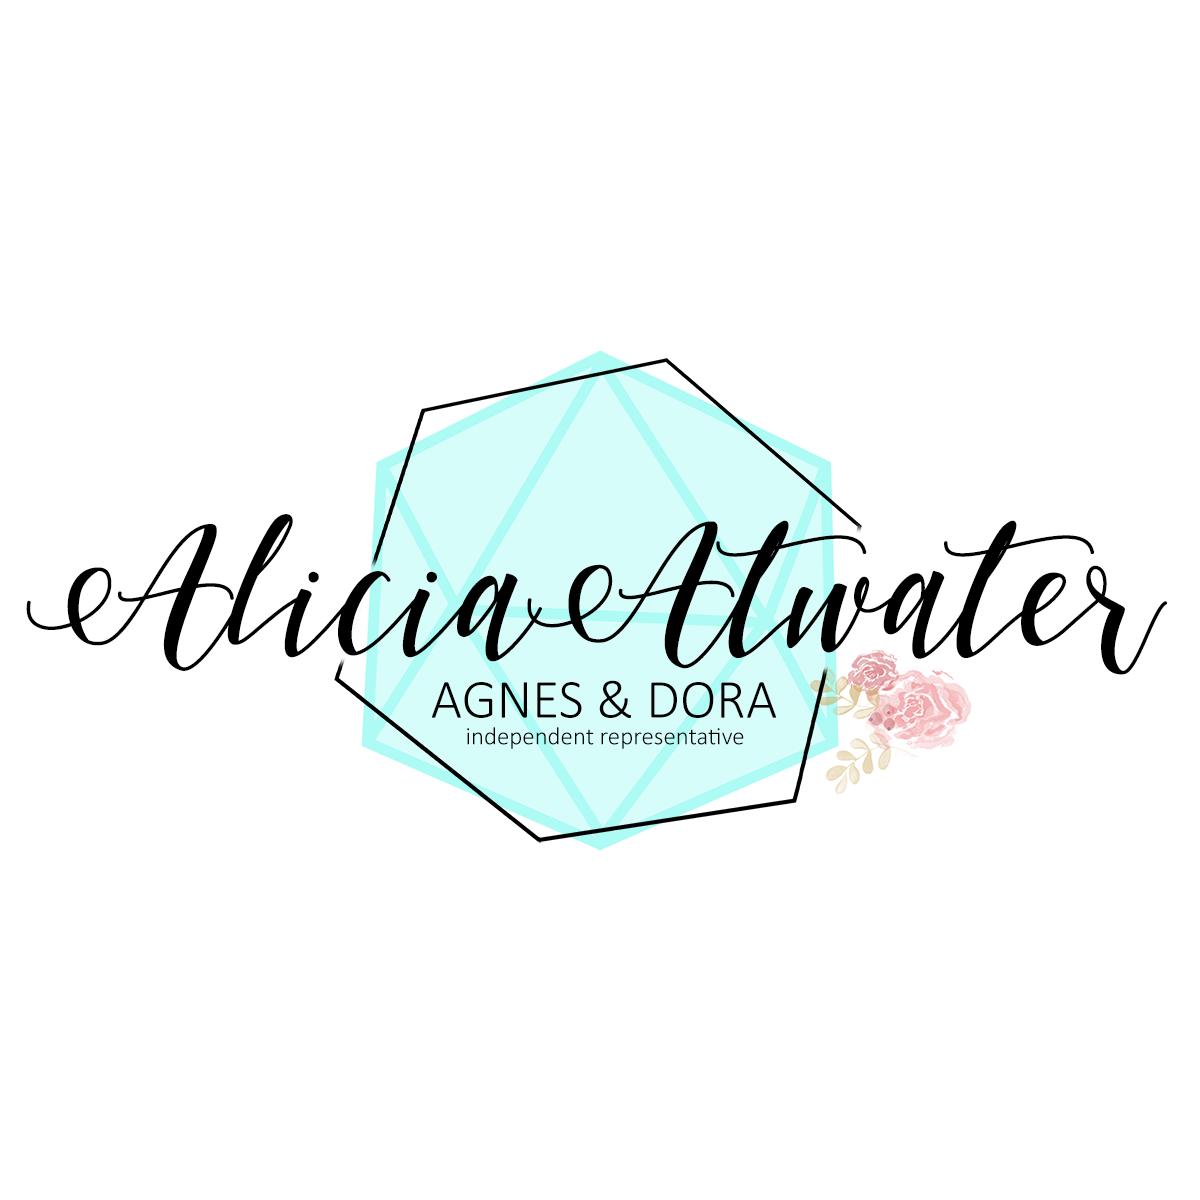 alica atwater agnes and dora logo white small for web.png